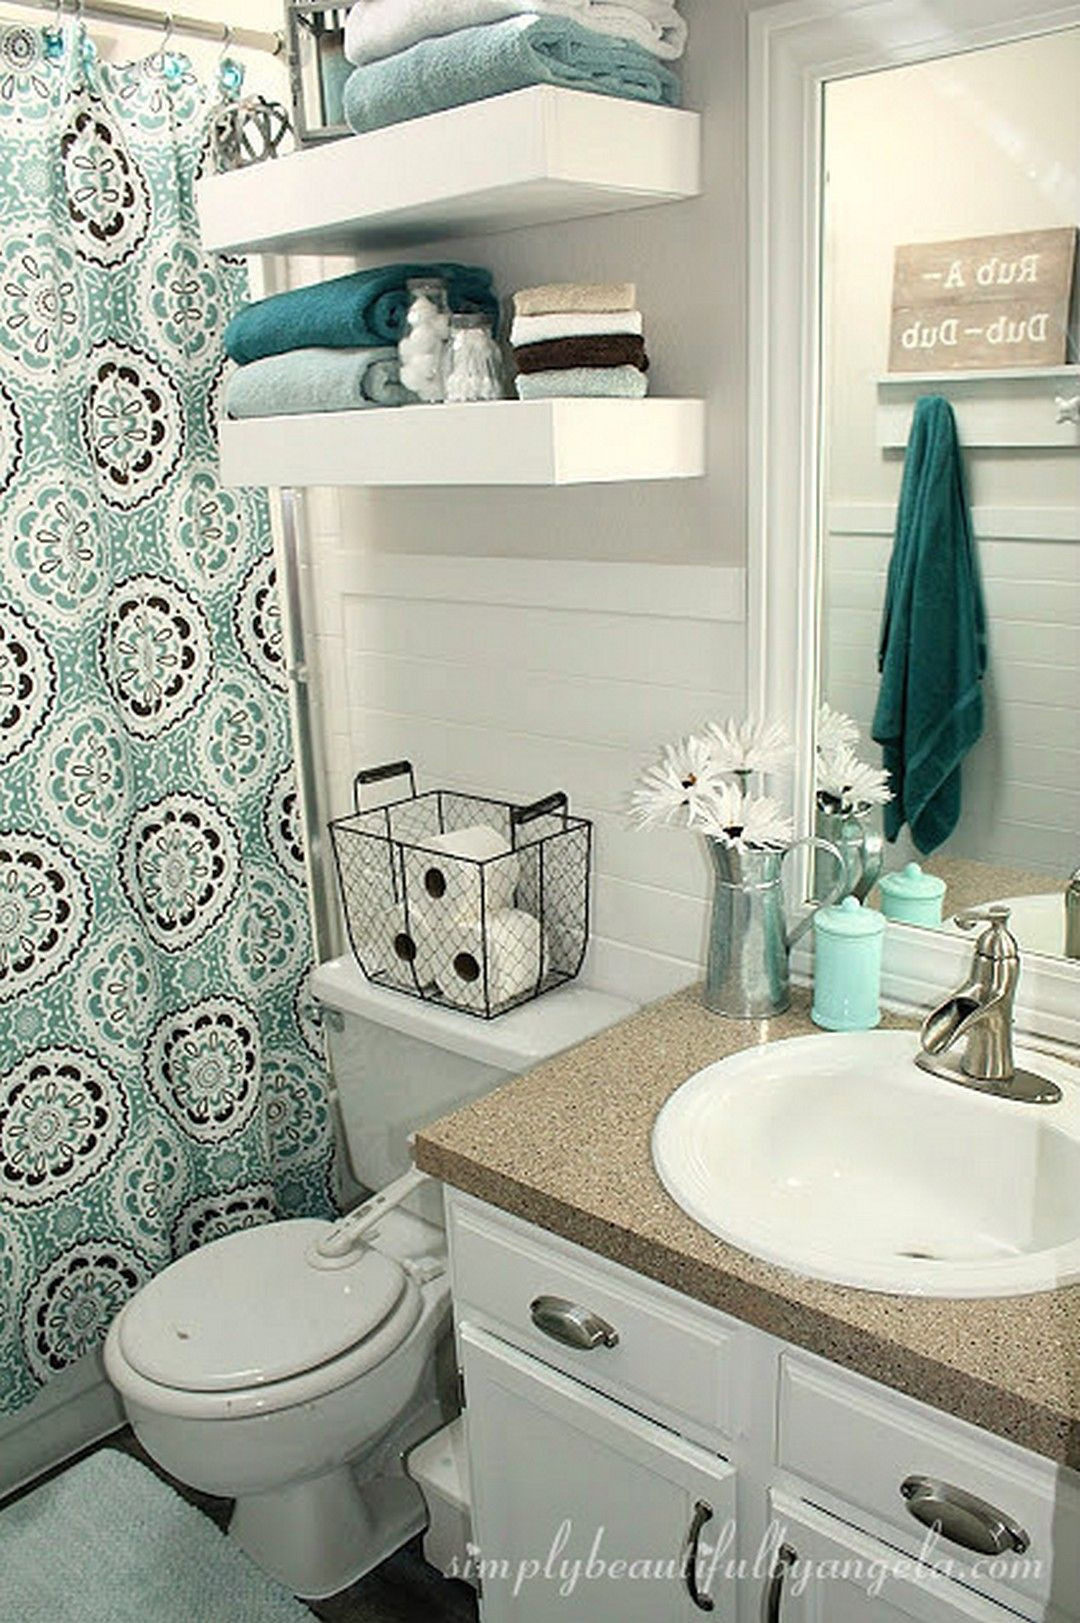 Decorate Small Bathroom Awesome Cozy Small Apartment Decorating Ideas A Bud